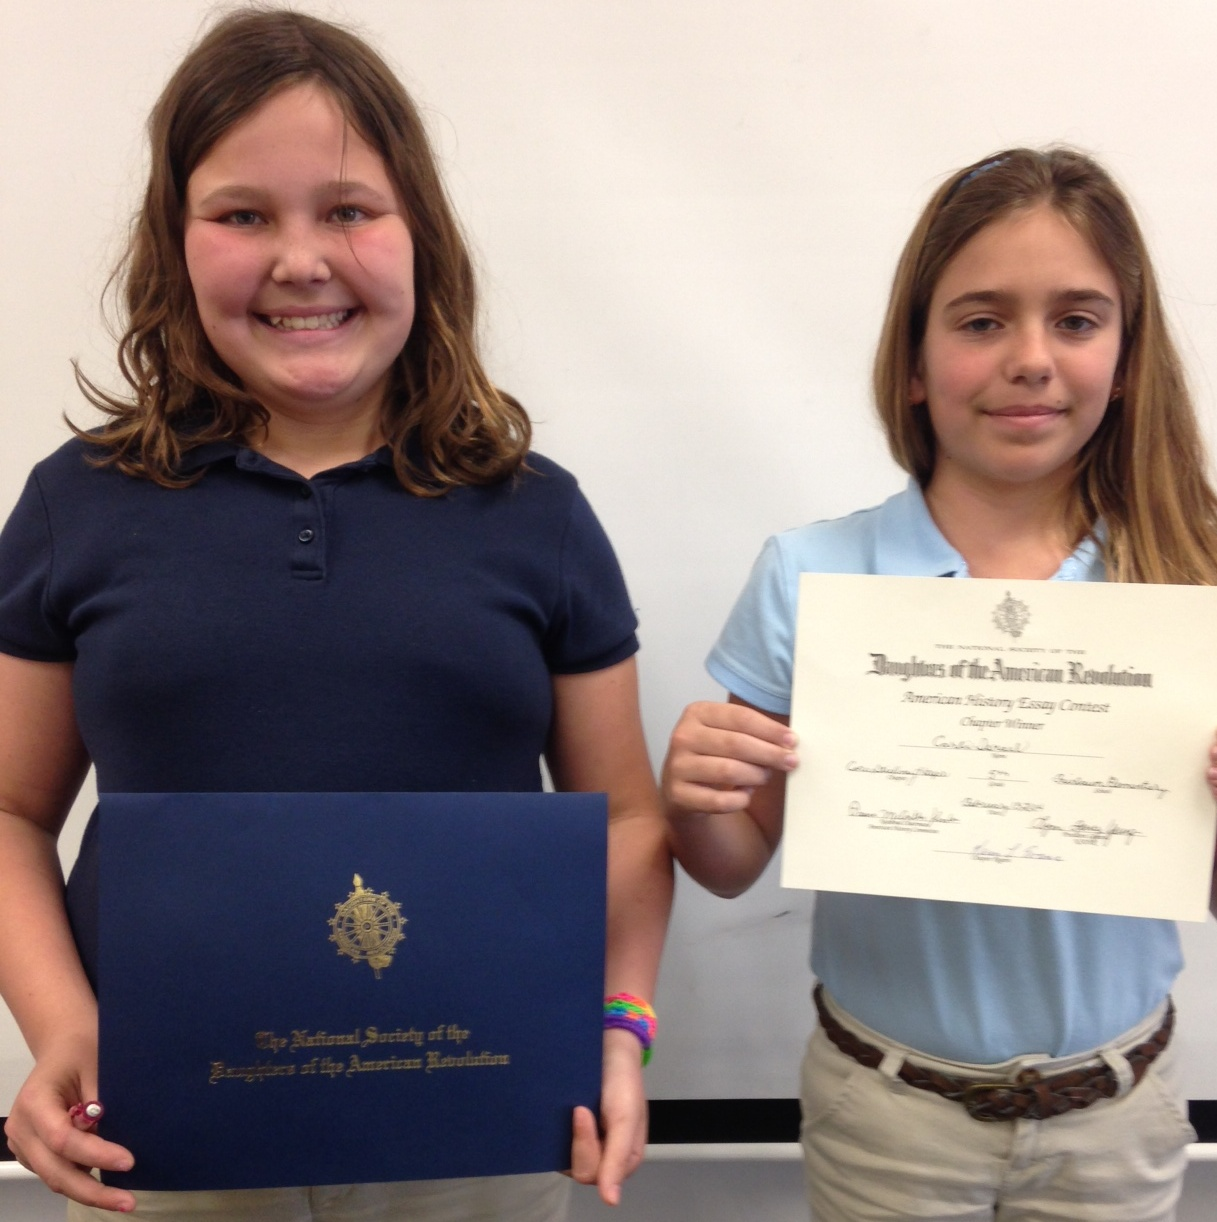 Fairlawn Elementary students sweep DAR essay contest